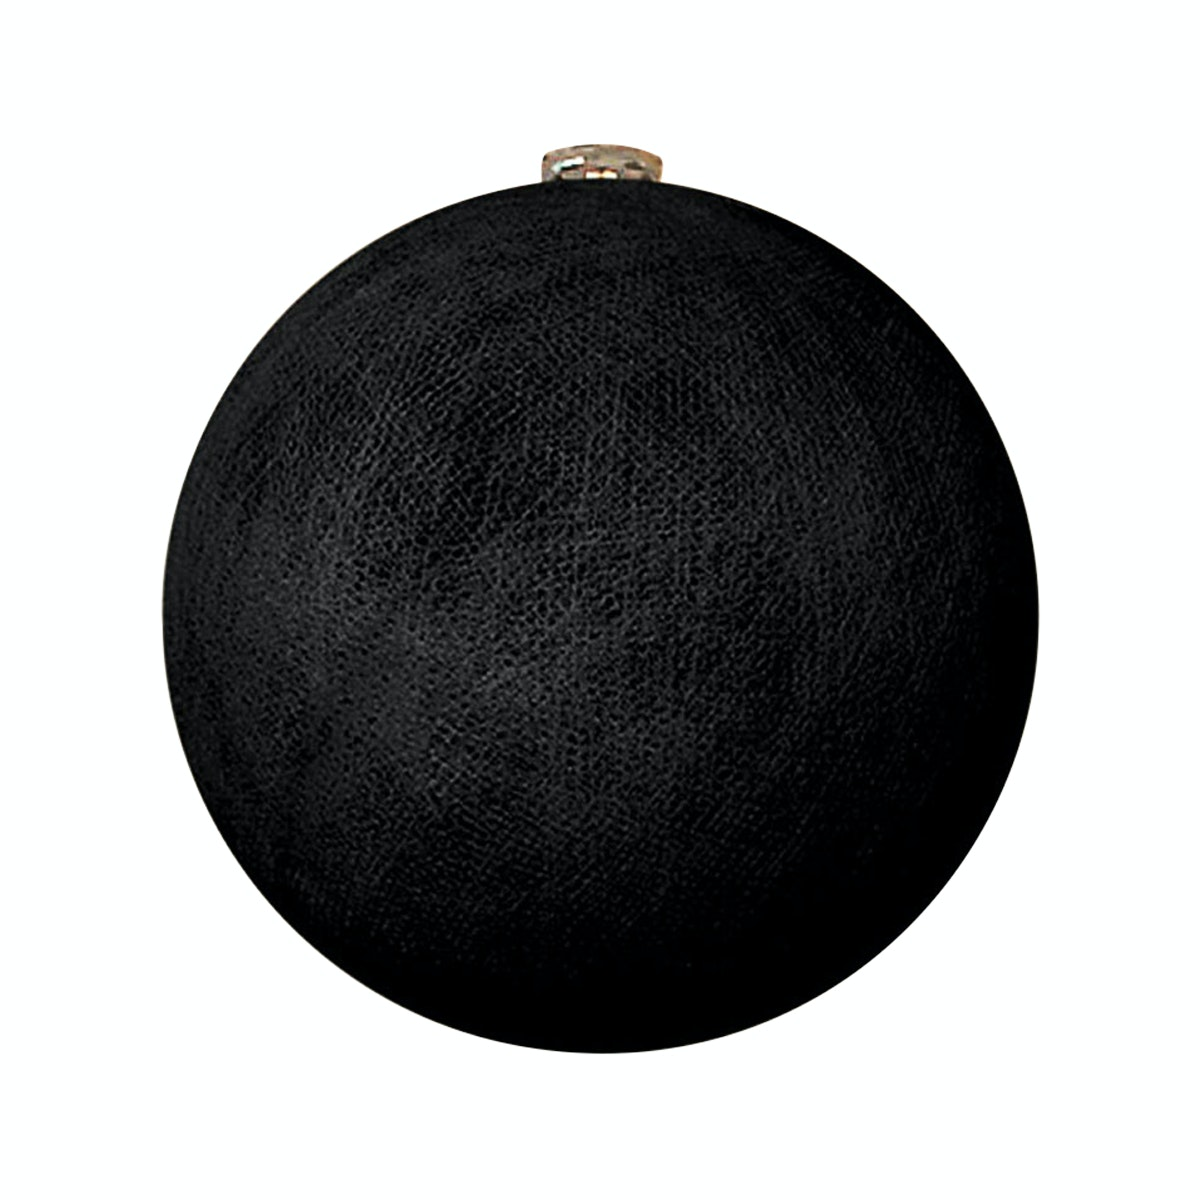 "Lightcraft Indonesia Big Cotton Ball 10"" Black"